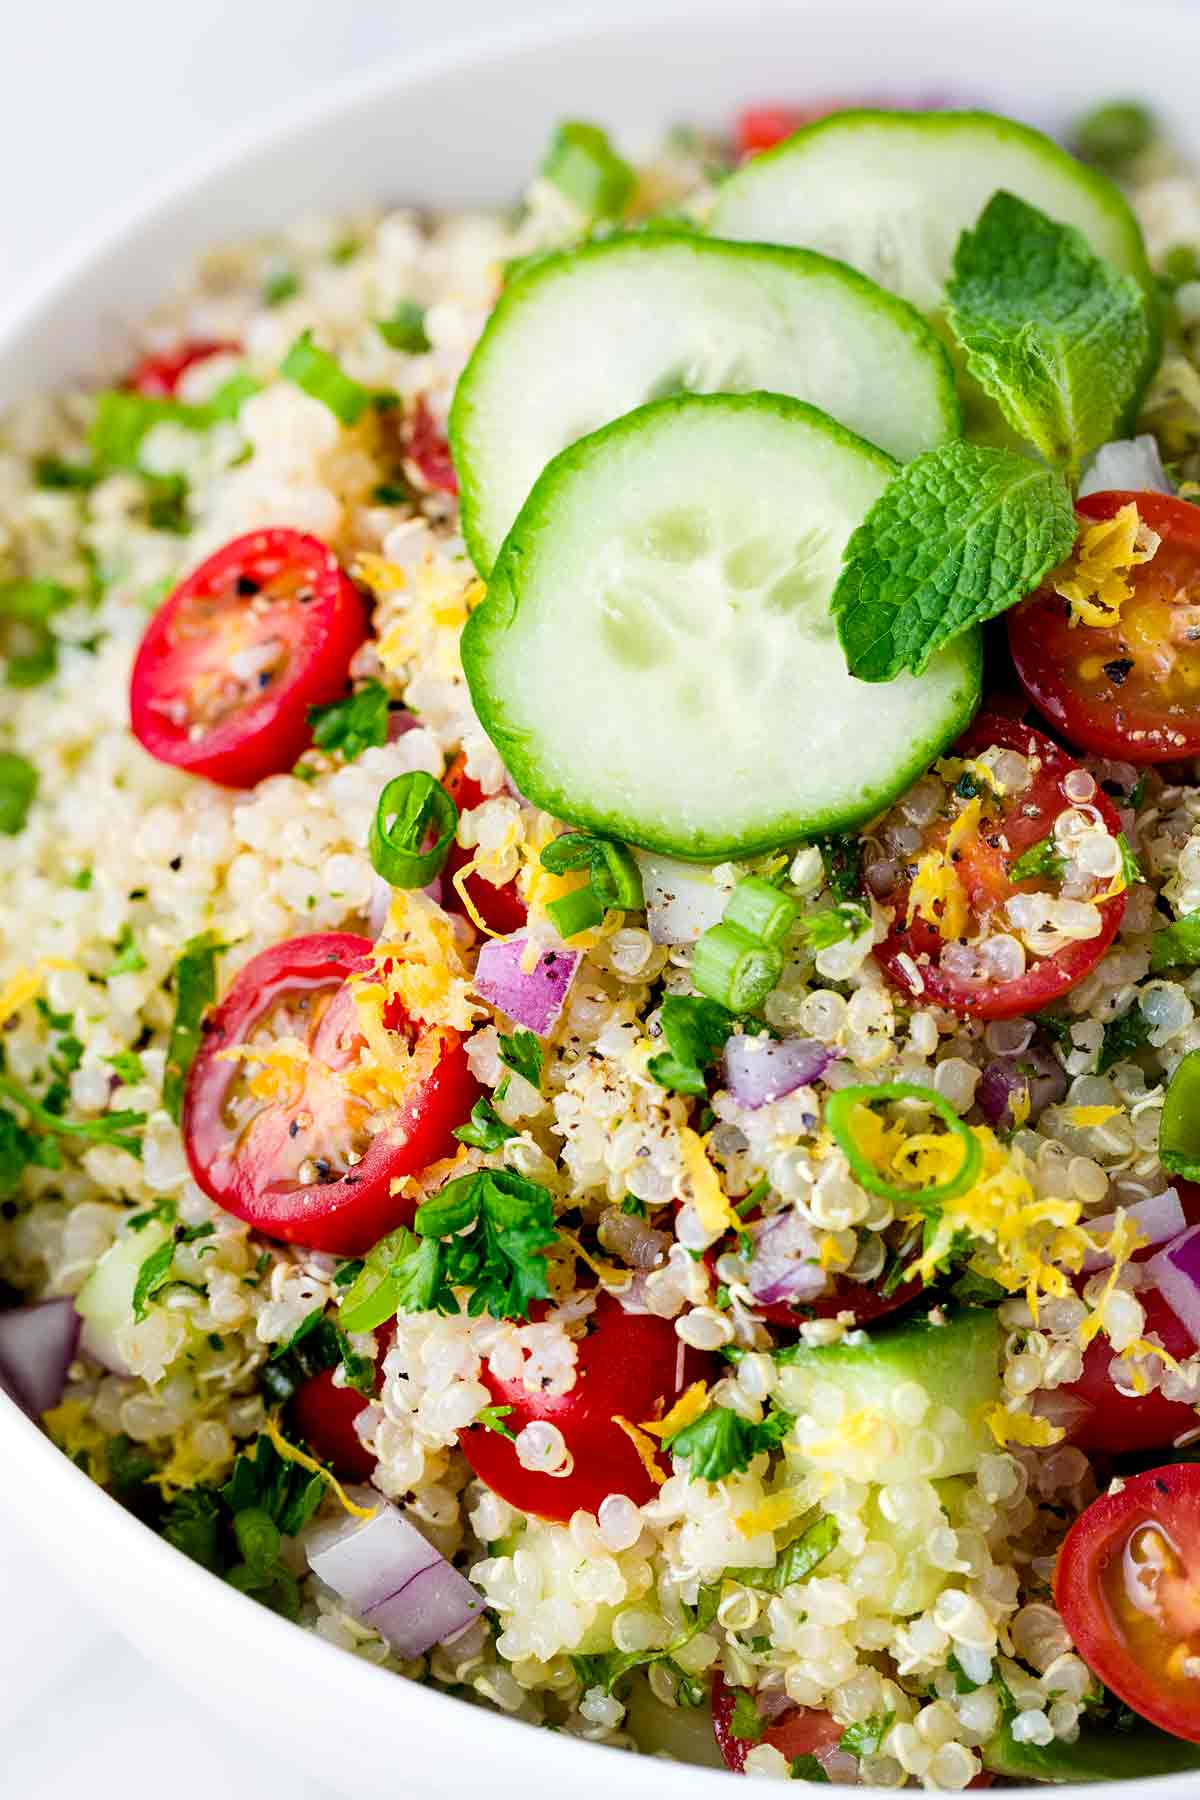 Close up photo showing quinoa tabbouleh in a white serving bowl